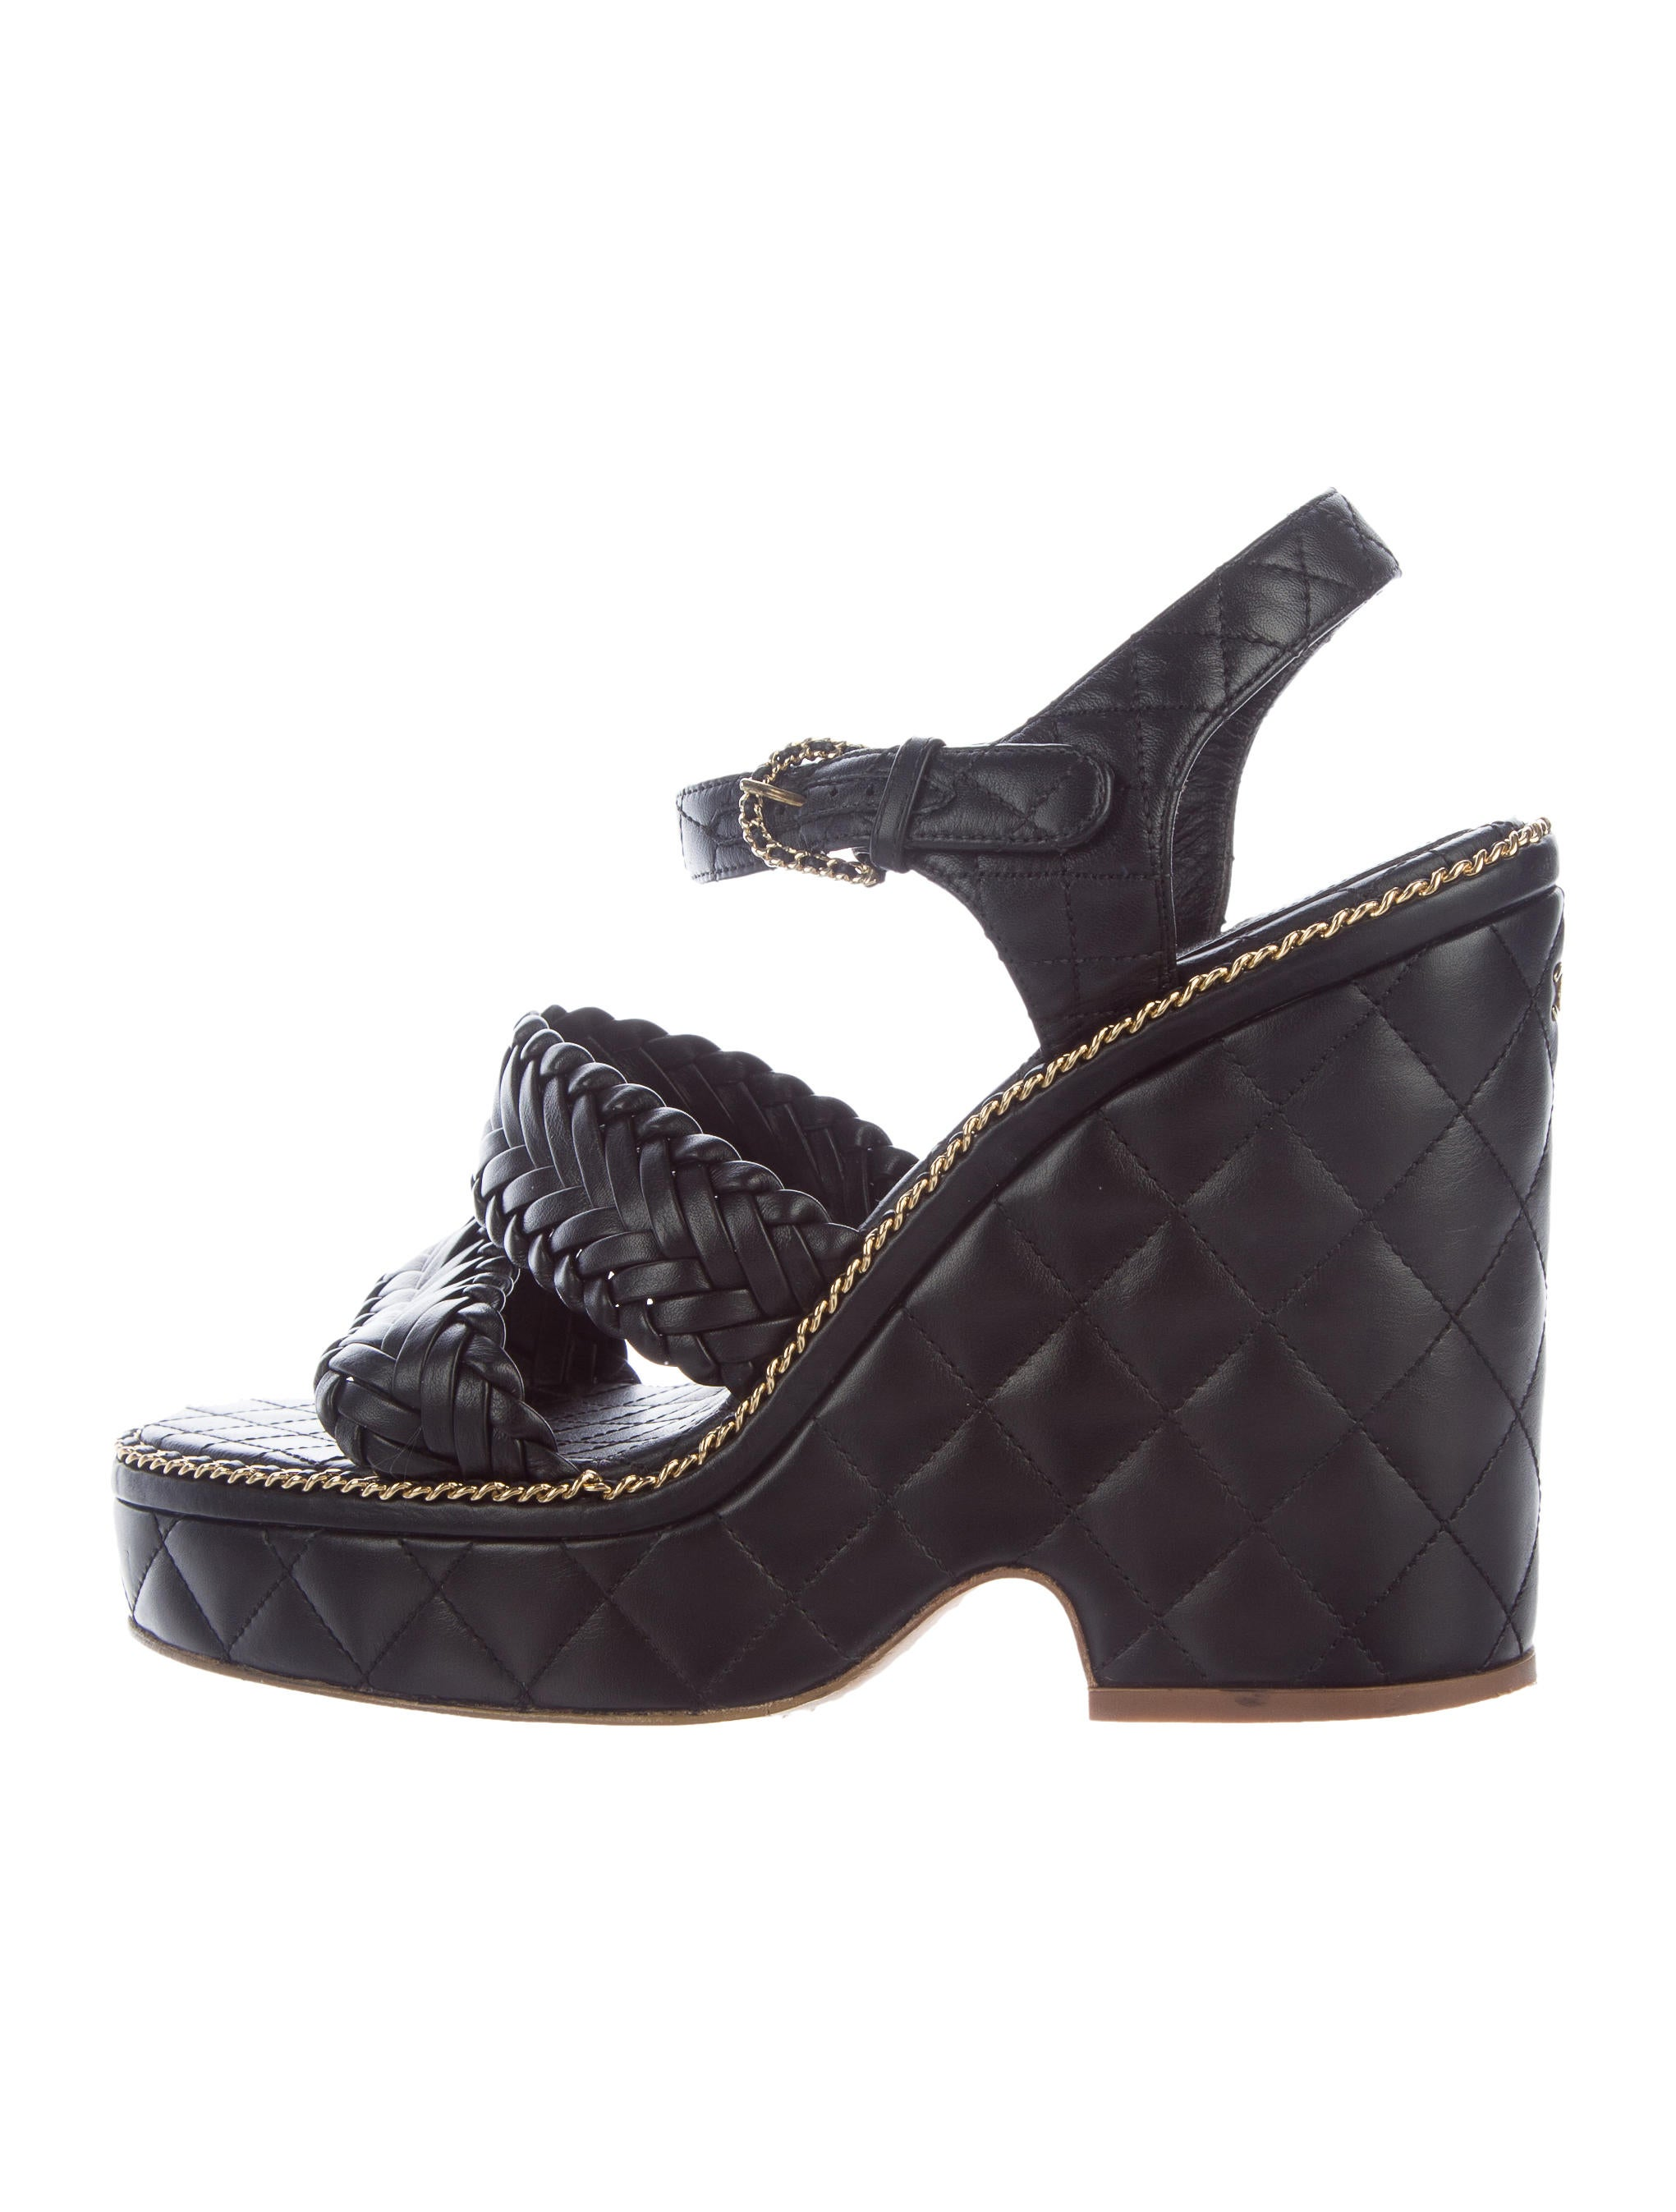 chanel 2015 quilted wedge sandals shoes cha196332